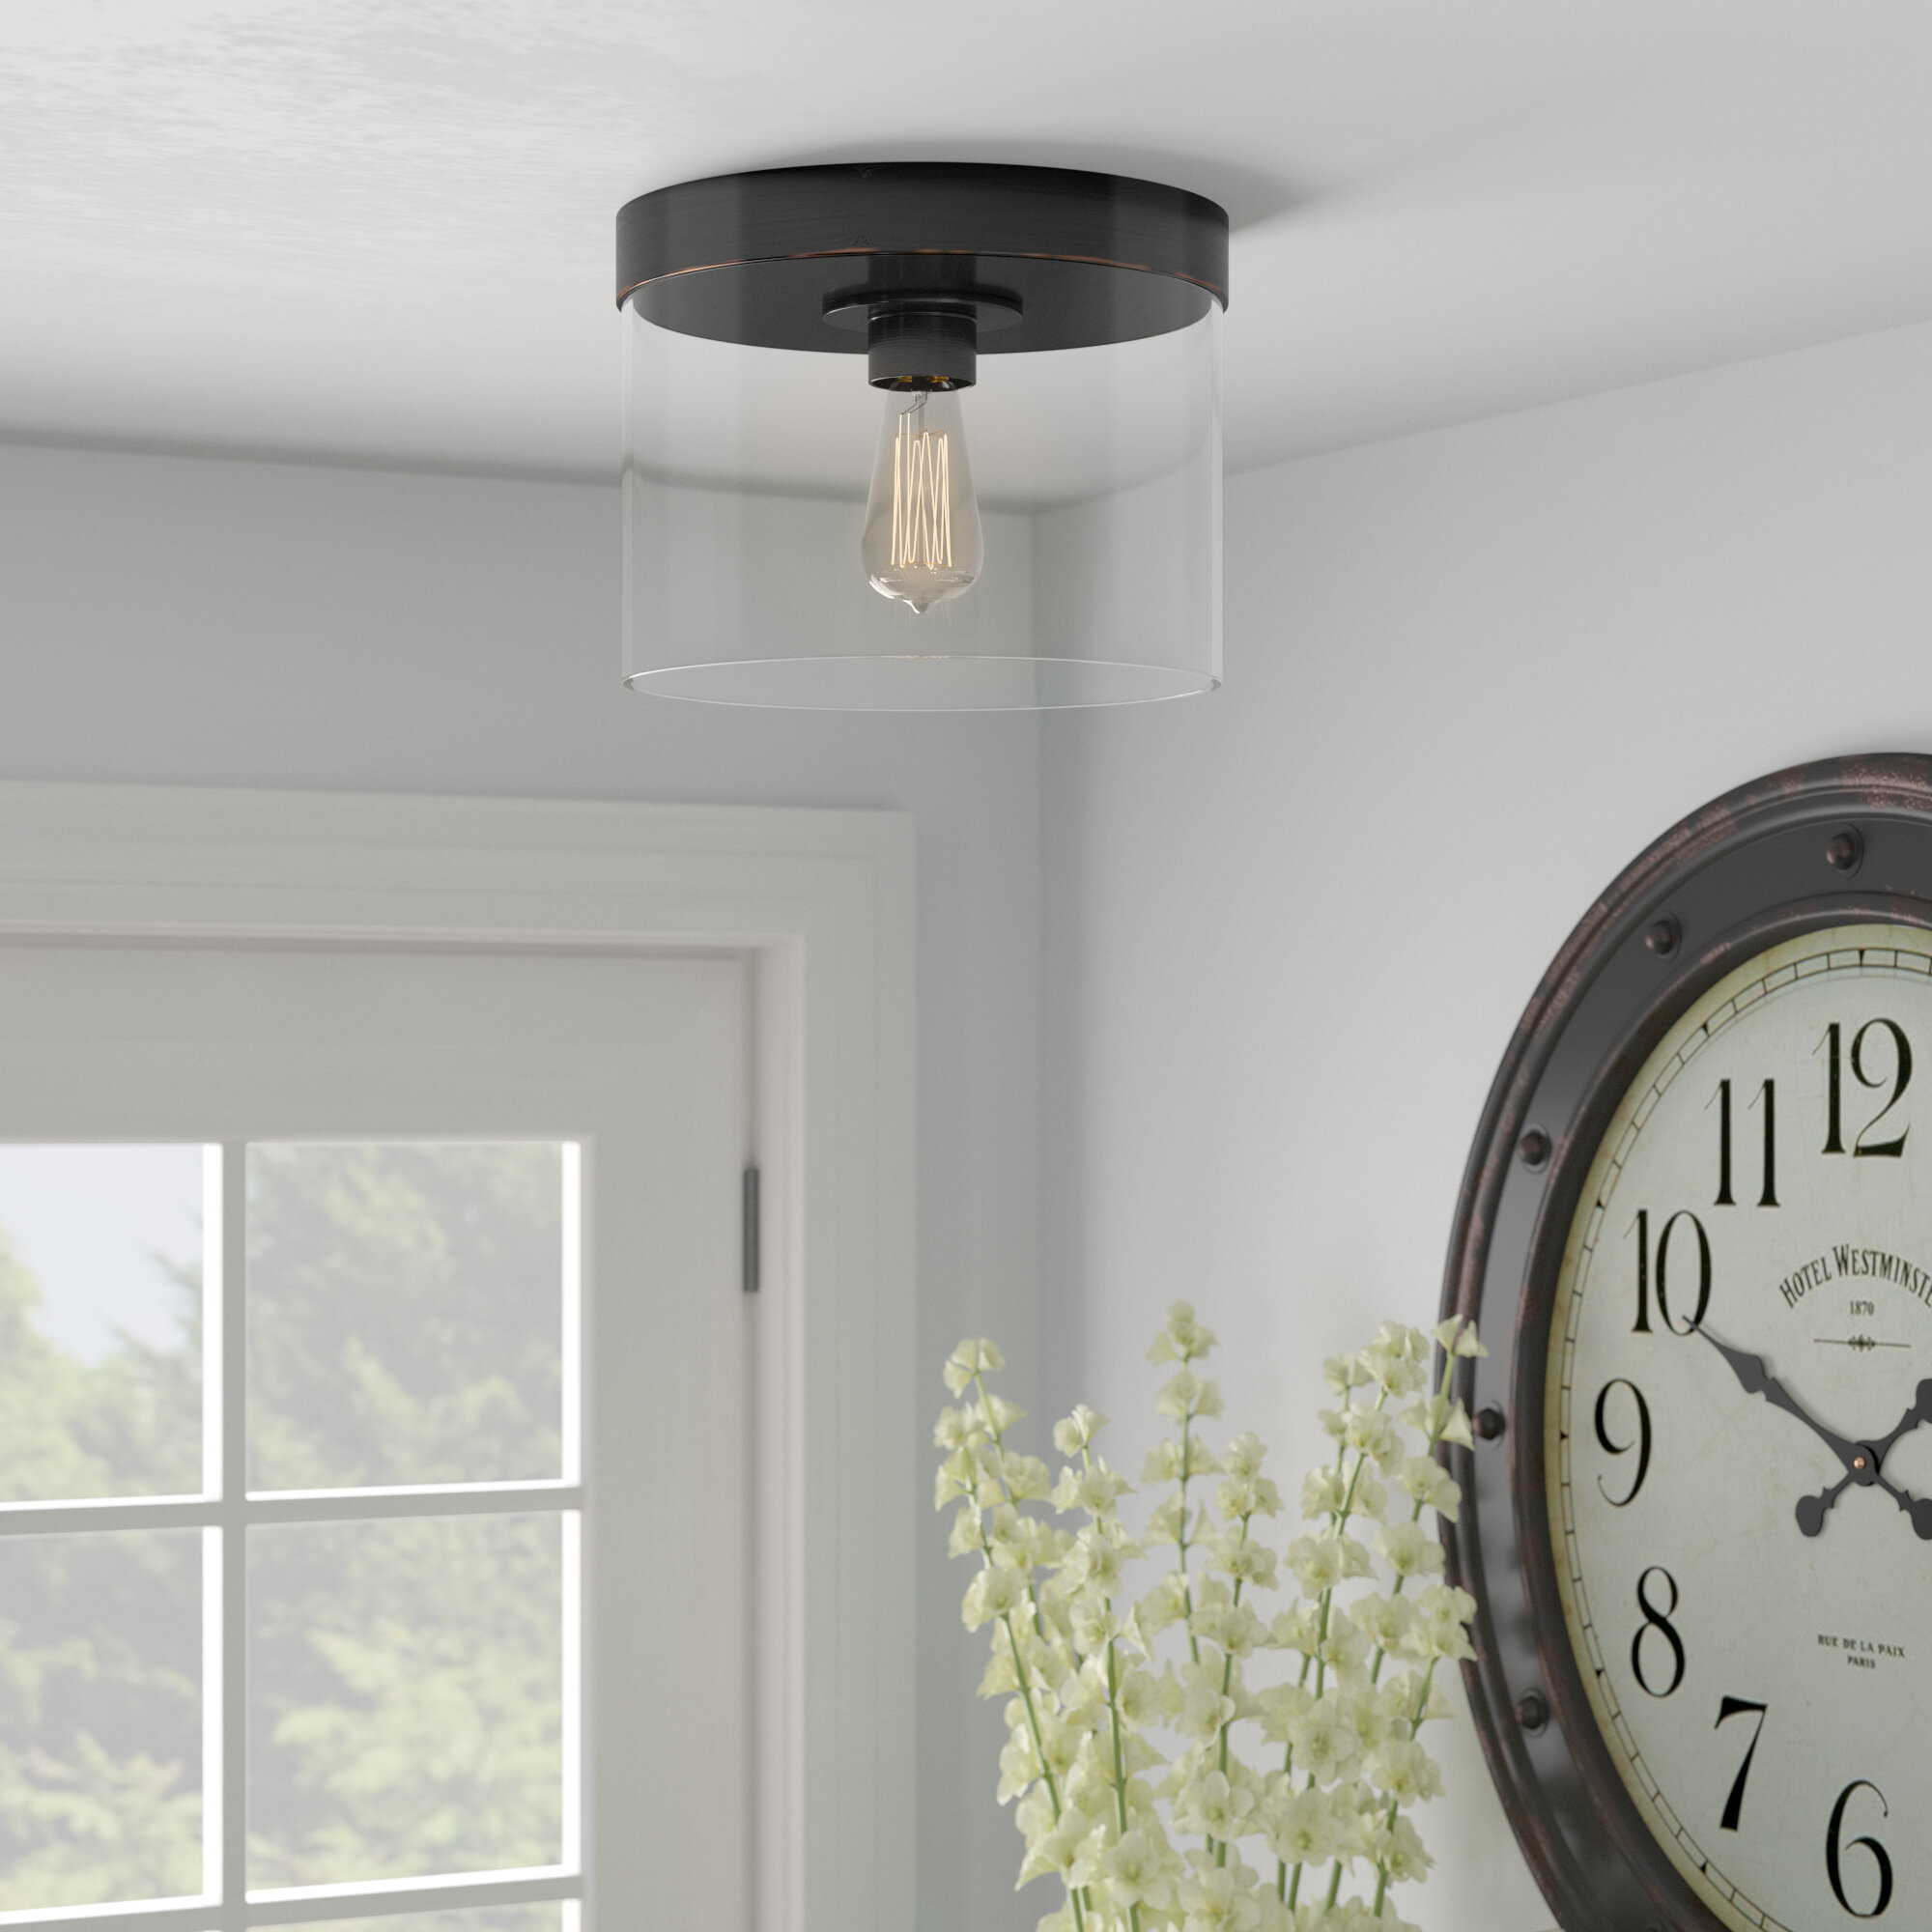 Laurel Foundry Modern Farmhouse Flush Mount Lighting You Ll Love In 2021 Wayfair